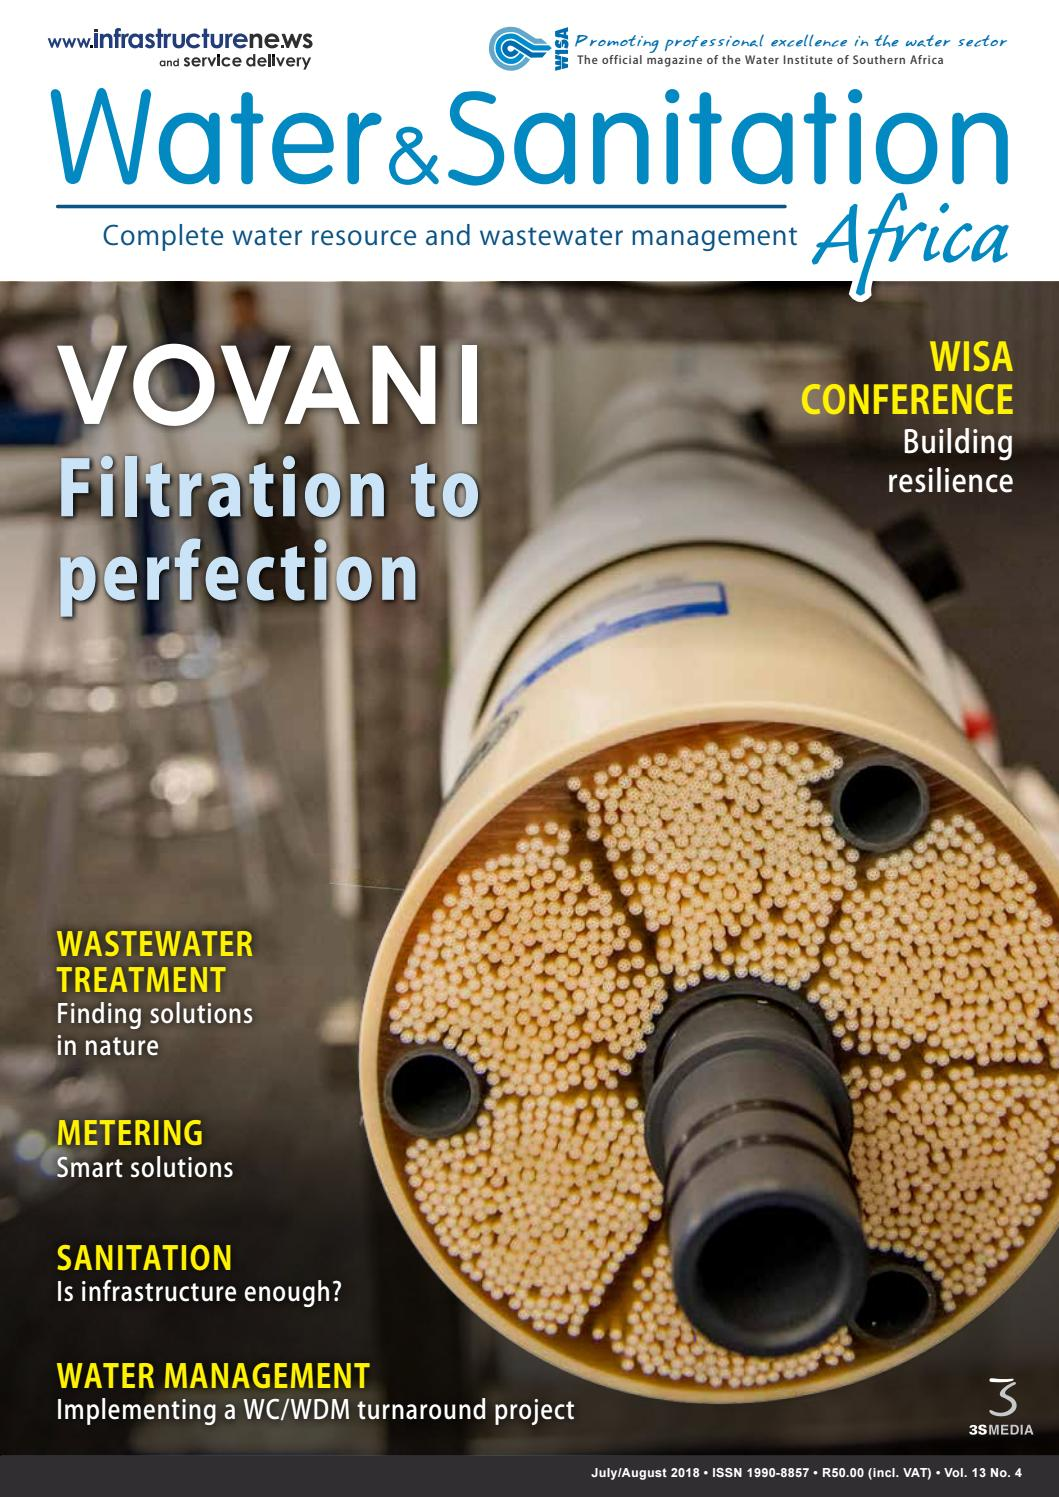 Water & Sanitation Africa July/August 2018 by 3S Media - issuu